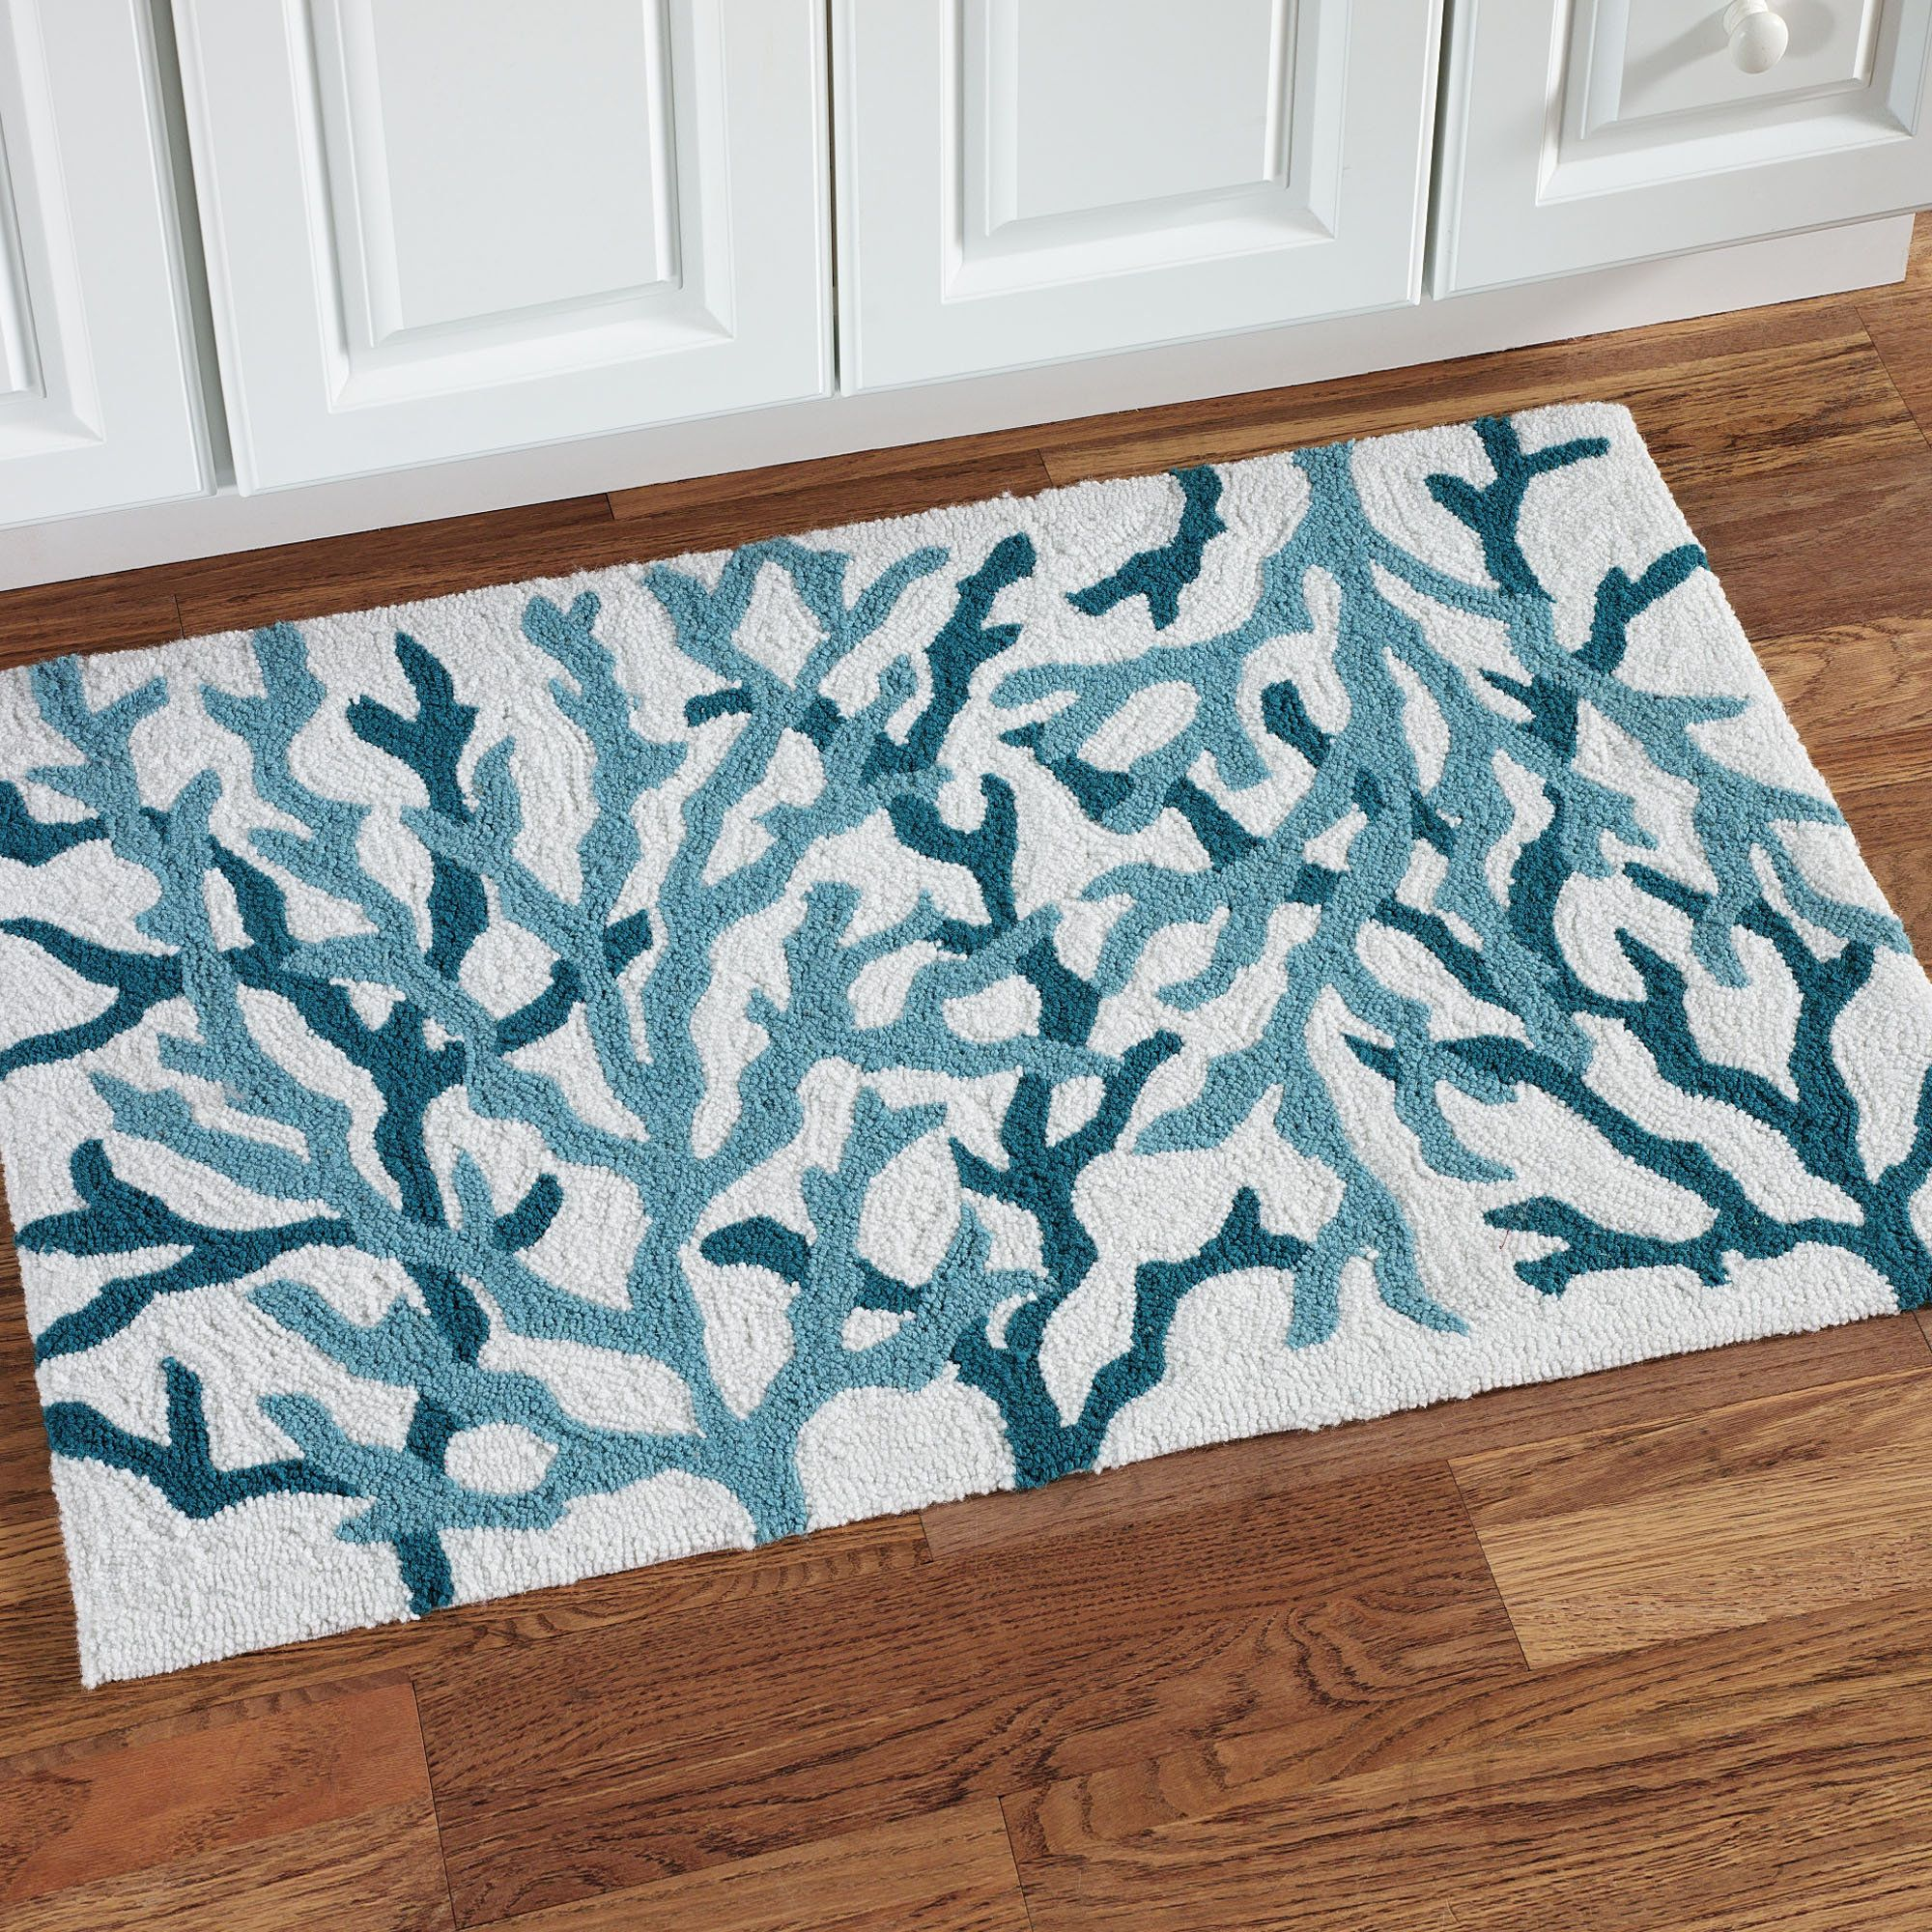 Cora Blue Coral Coastal Hooked Accent Rug Accent Rugs Coral And - Coral color bathroom rugs for bathroom decorating ideas